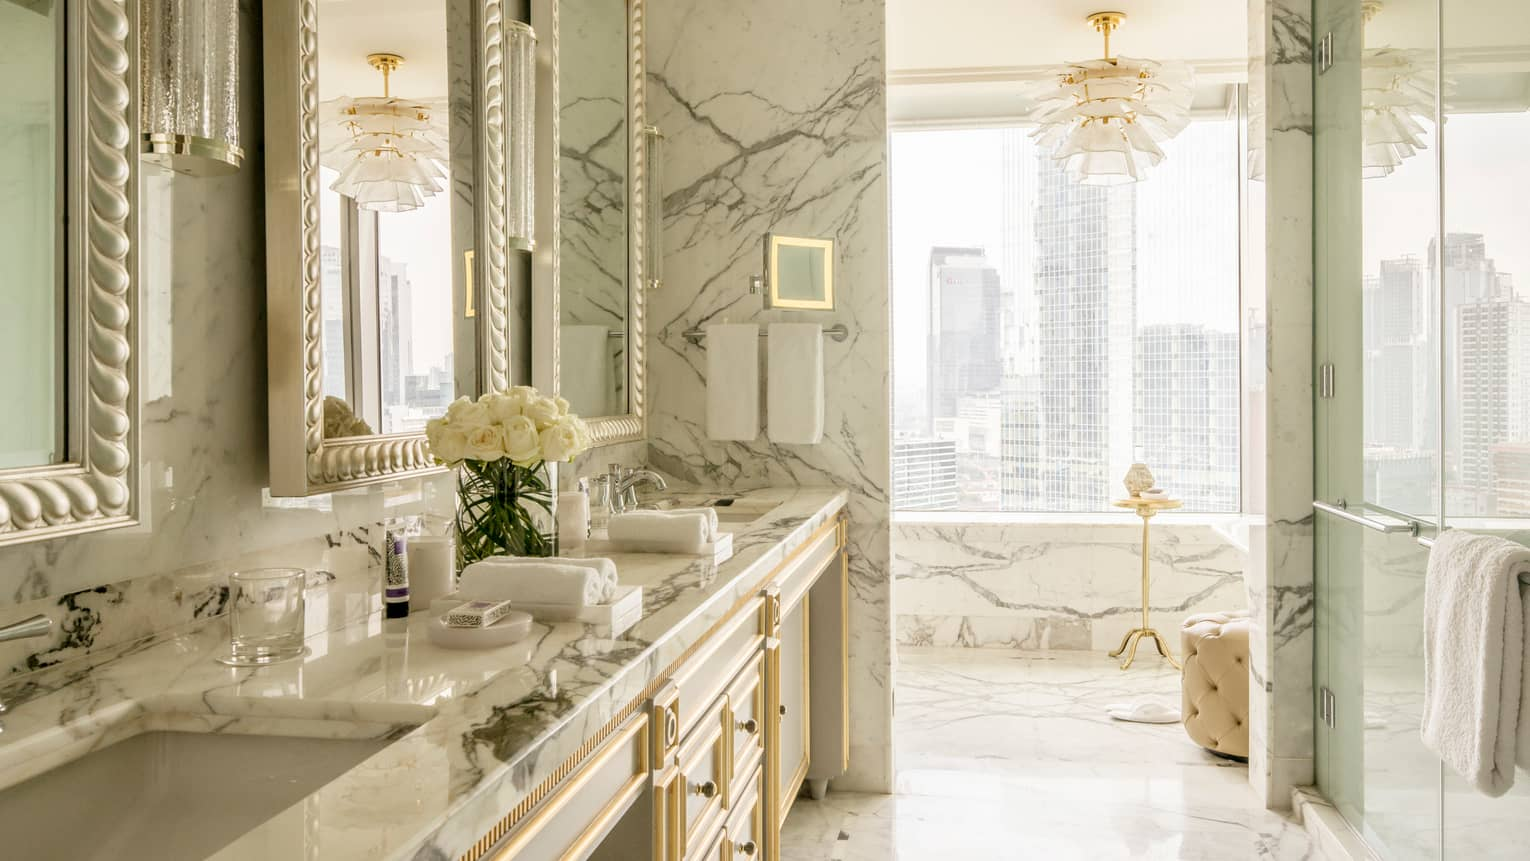 Presidential Suite bright white marble bathroom with double sink, glass shower, white chandelier, city views